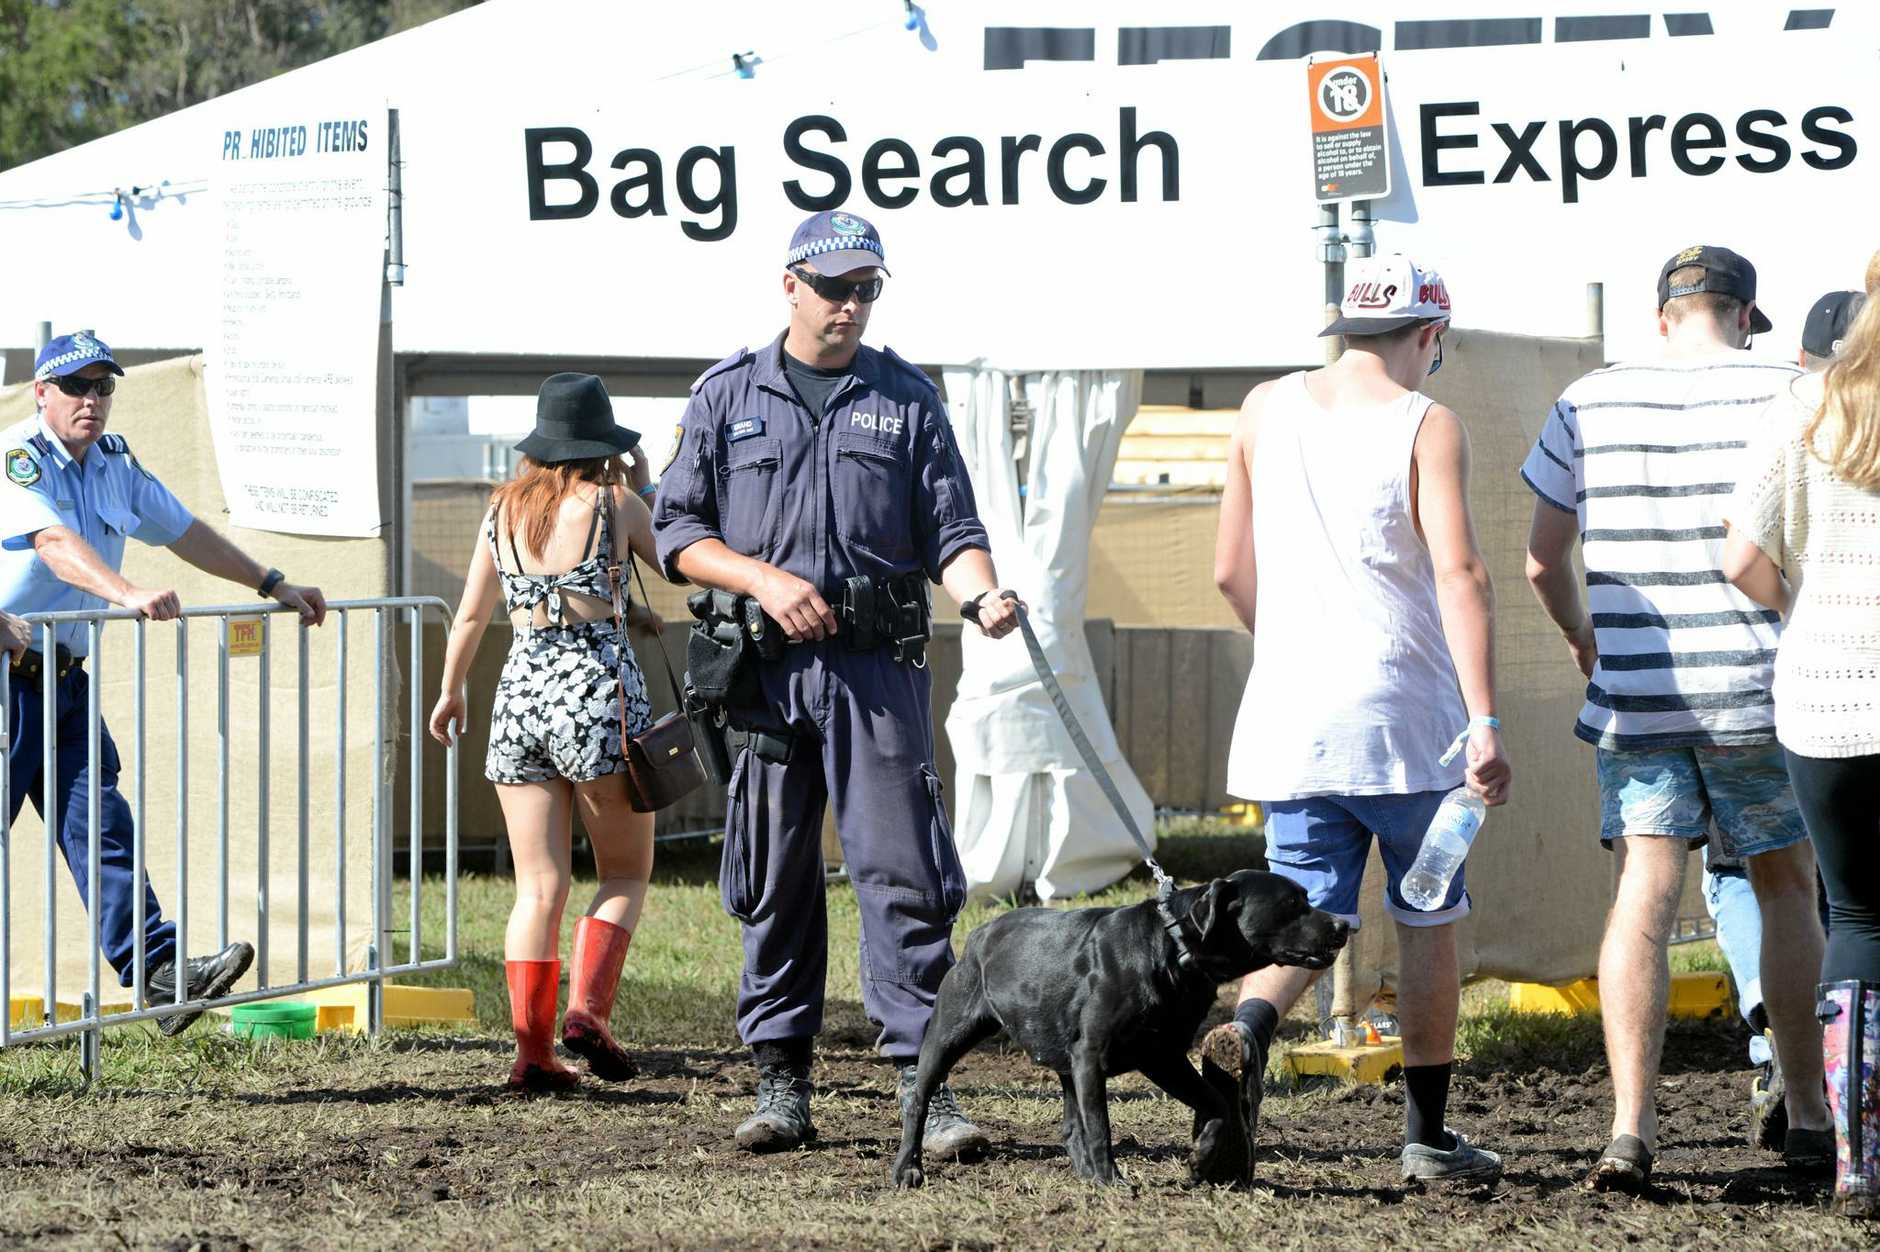 Police sniffer dogs will be on the ground at Splendour In The Grass this year.